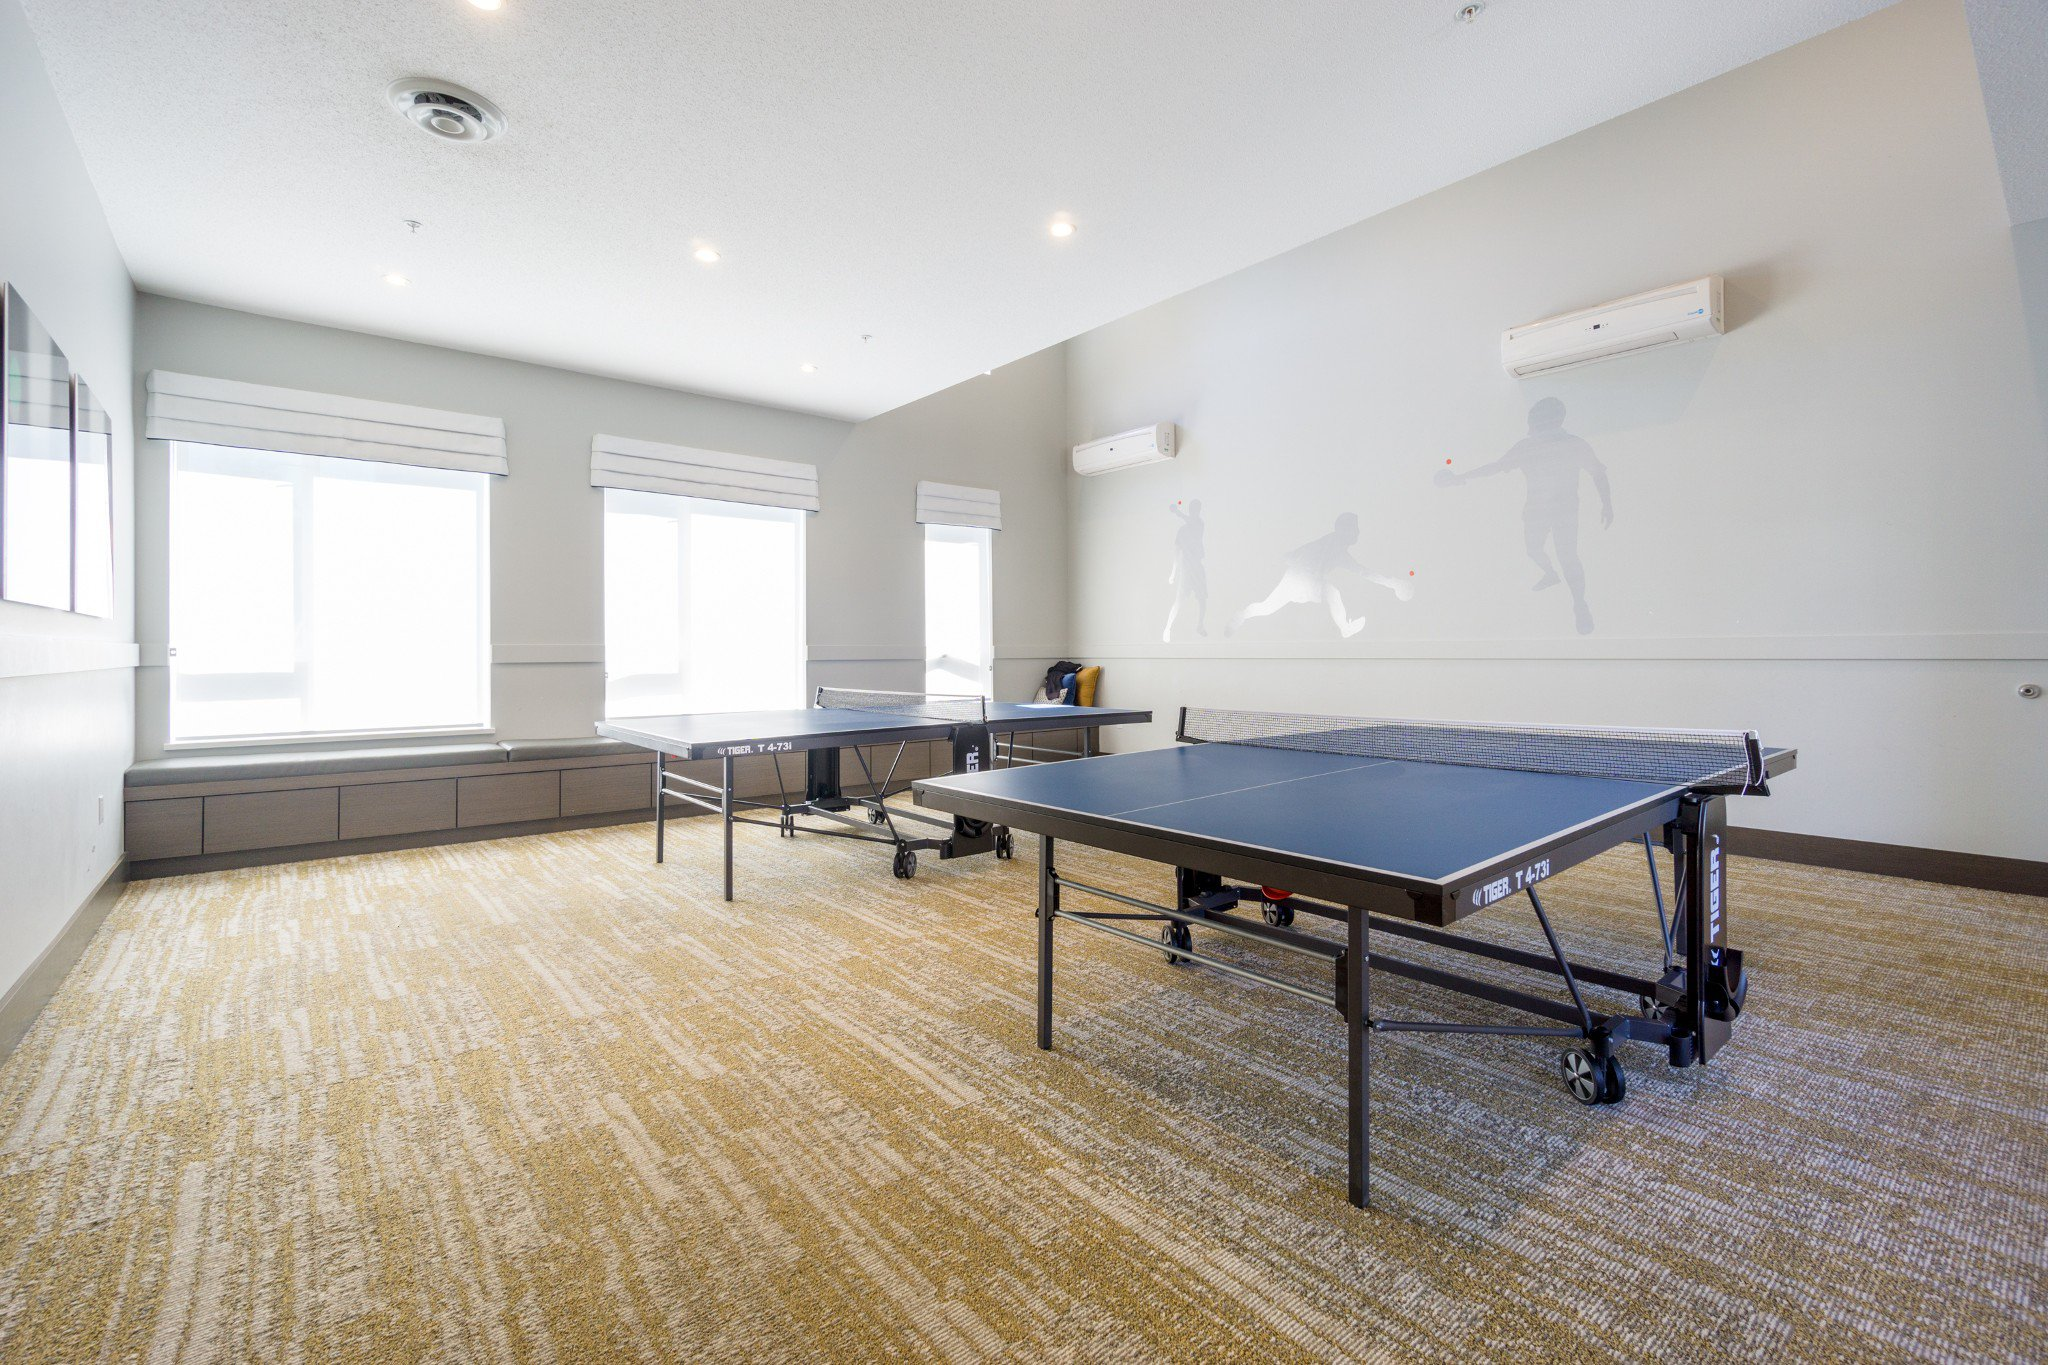 """Photo 33: Photos: 303 9311 ALEXANDRA Road in Richmond: West Cambie Condo for sale in """"ALEXANDRA COURT"""" : MLS®# R2347629"""